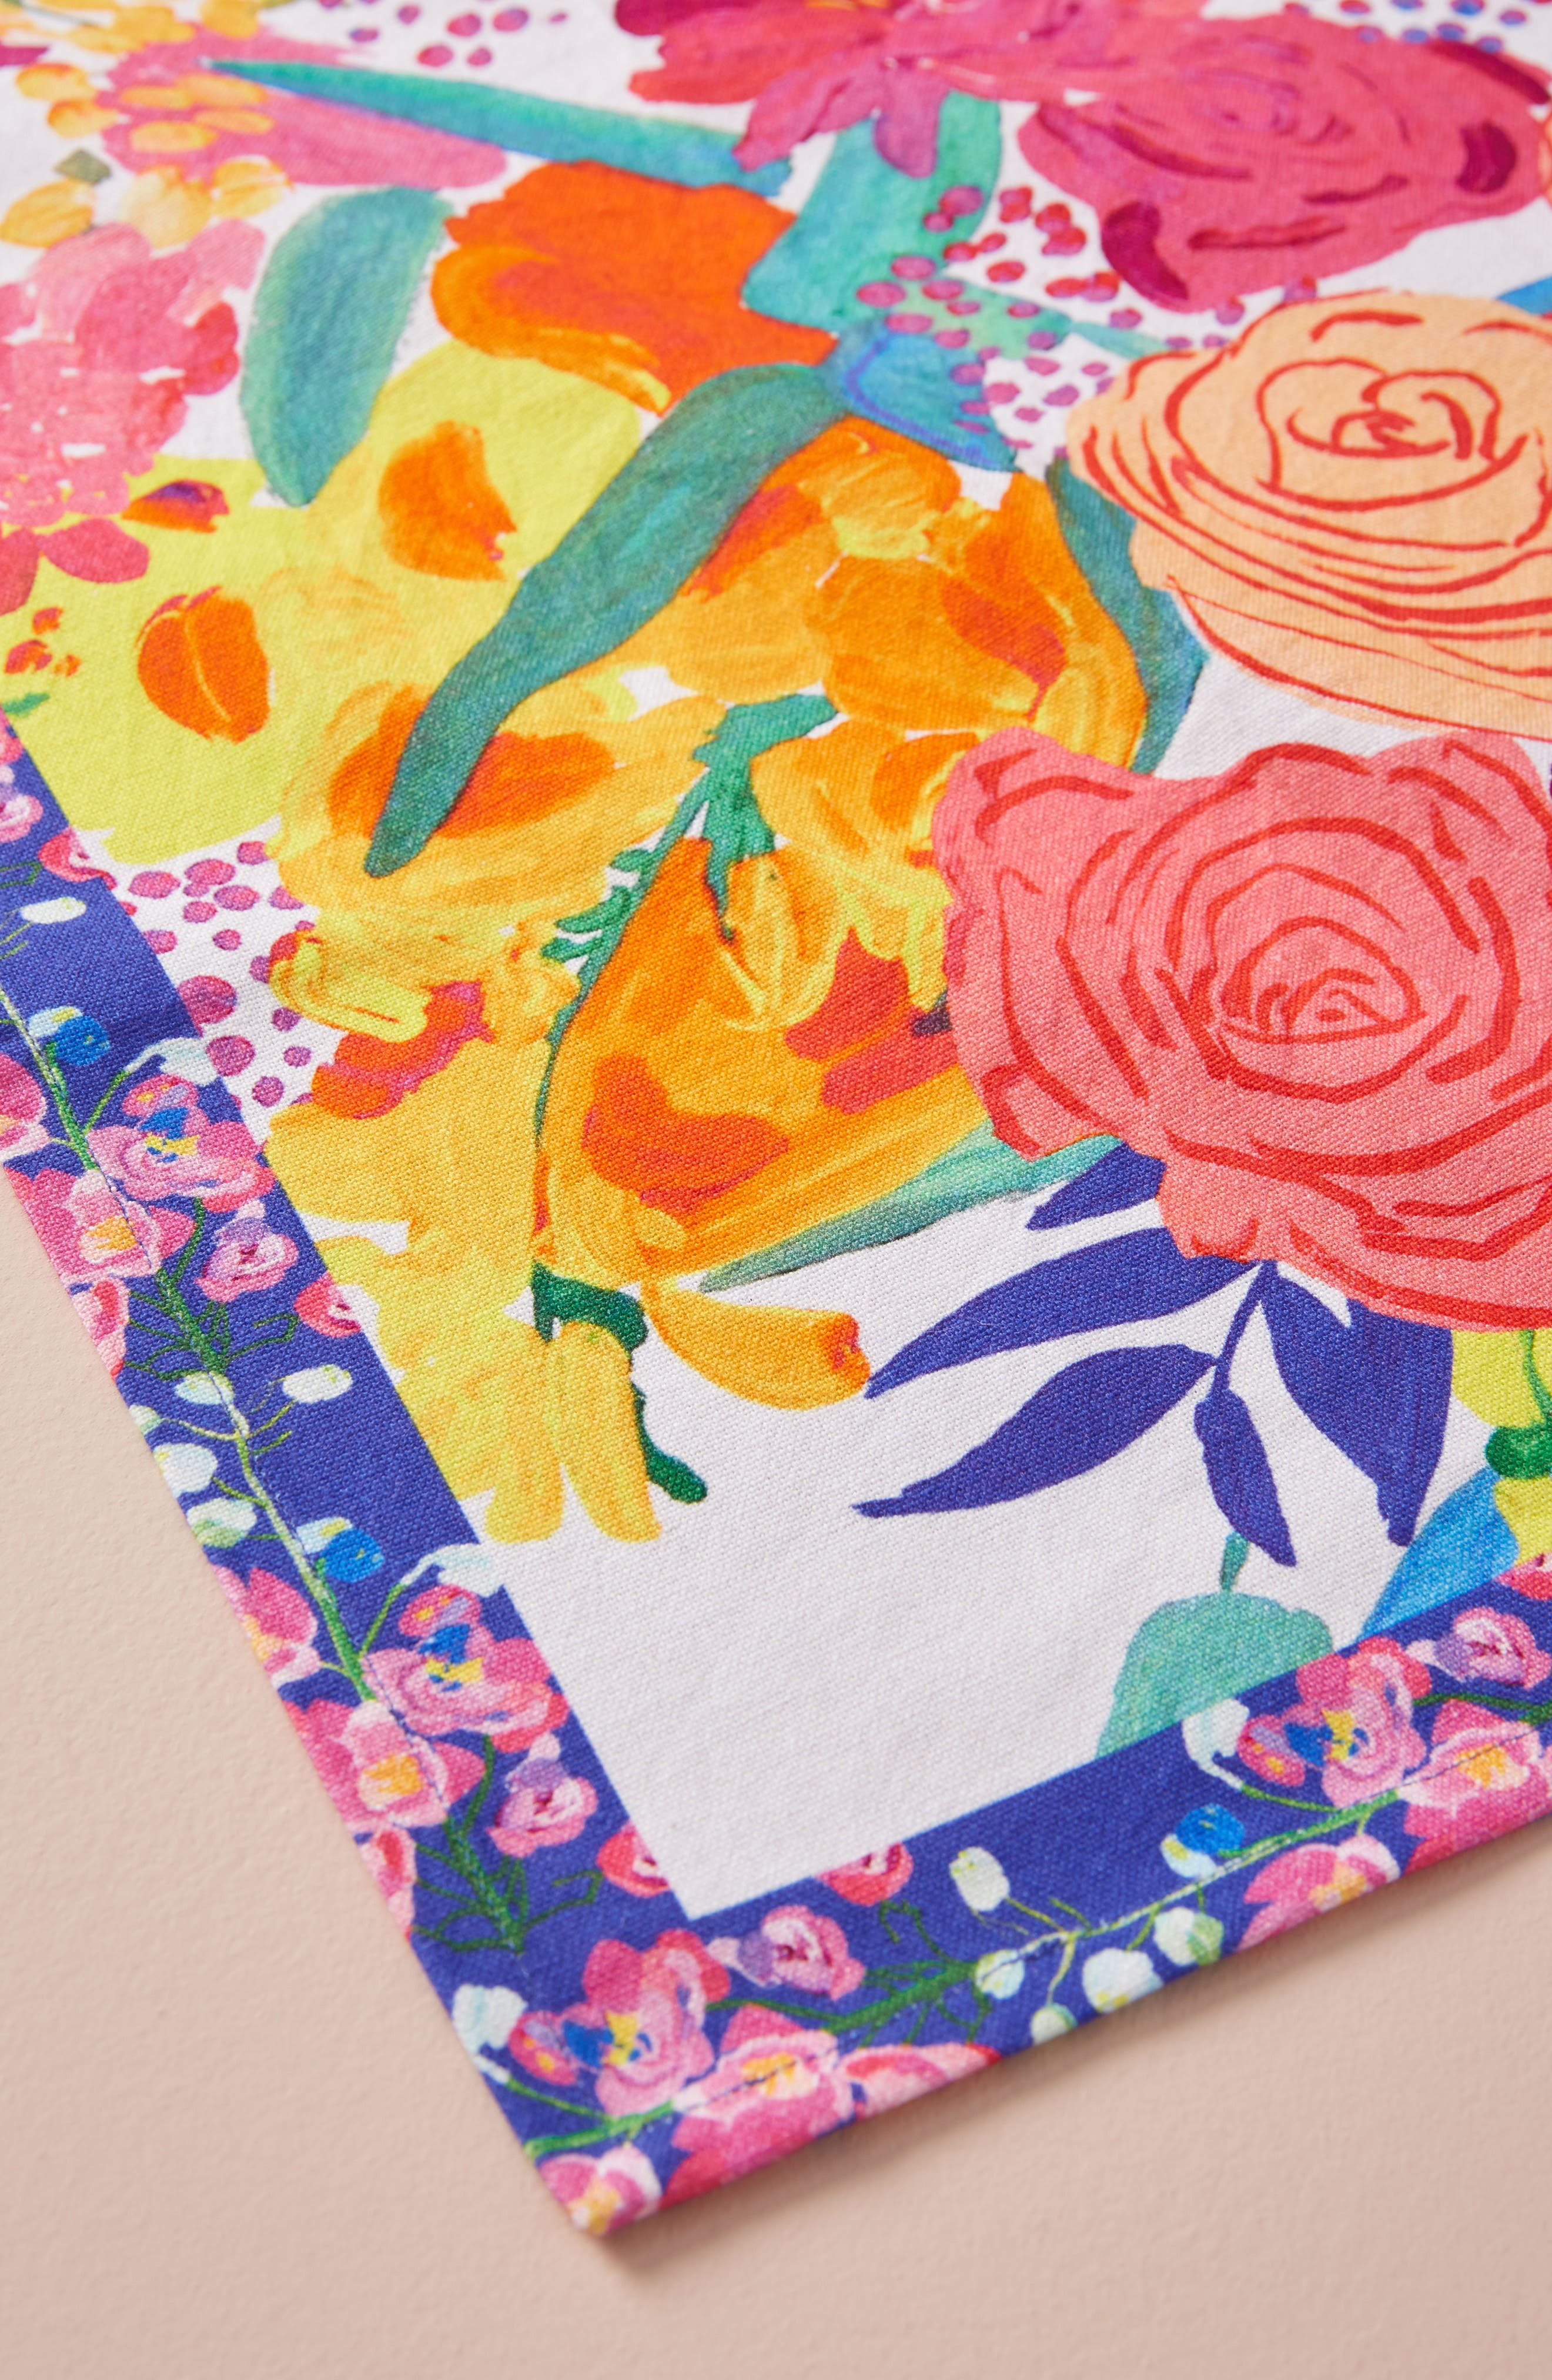 Paint + Petals Dishtowel,                             Alternate thumbnail 2, color,                             650